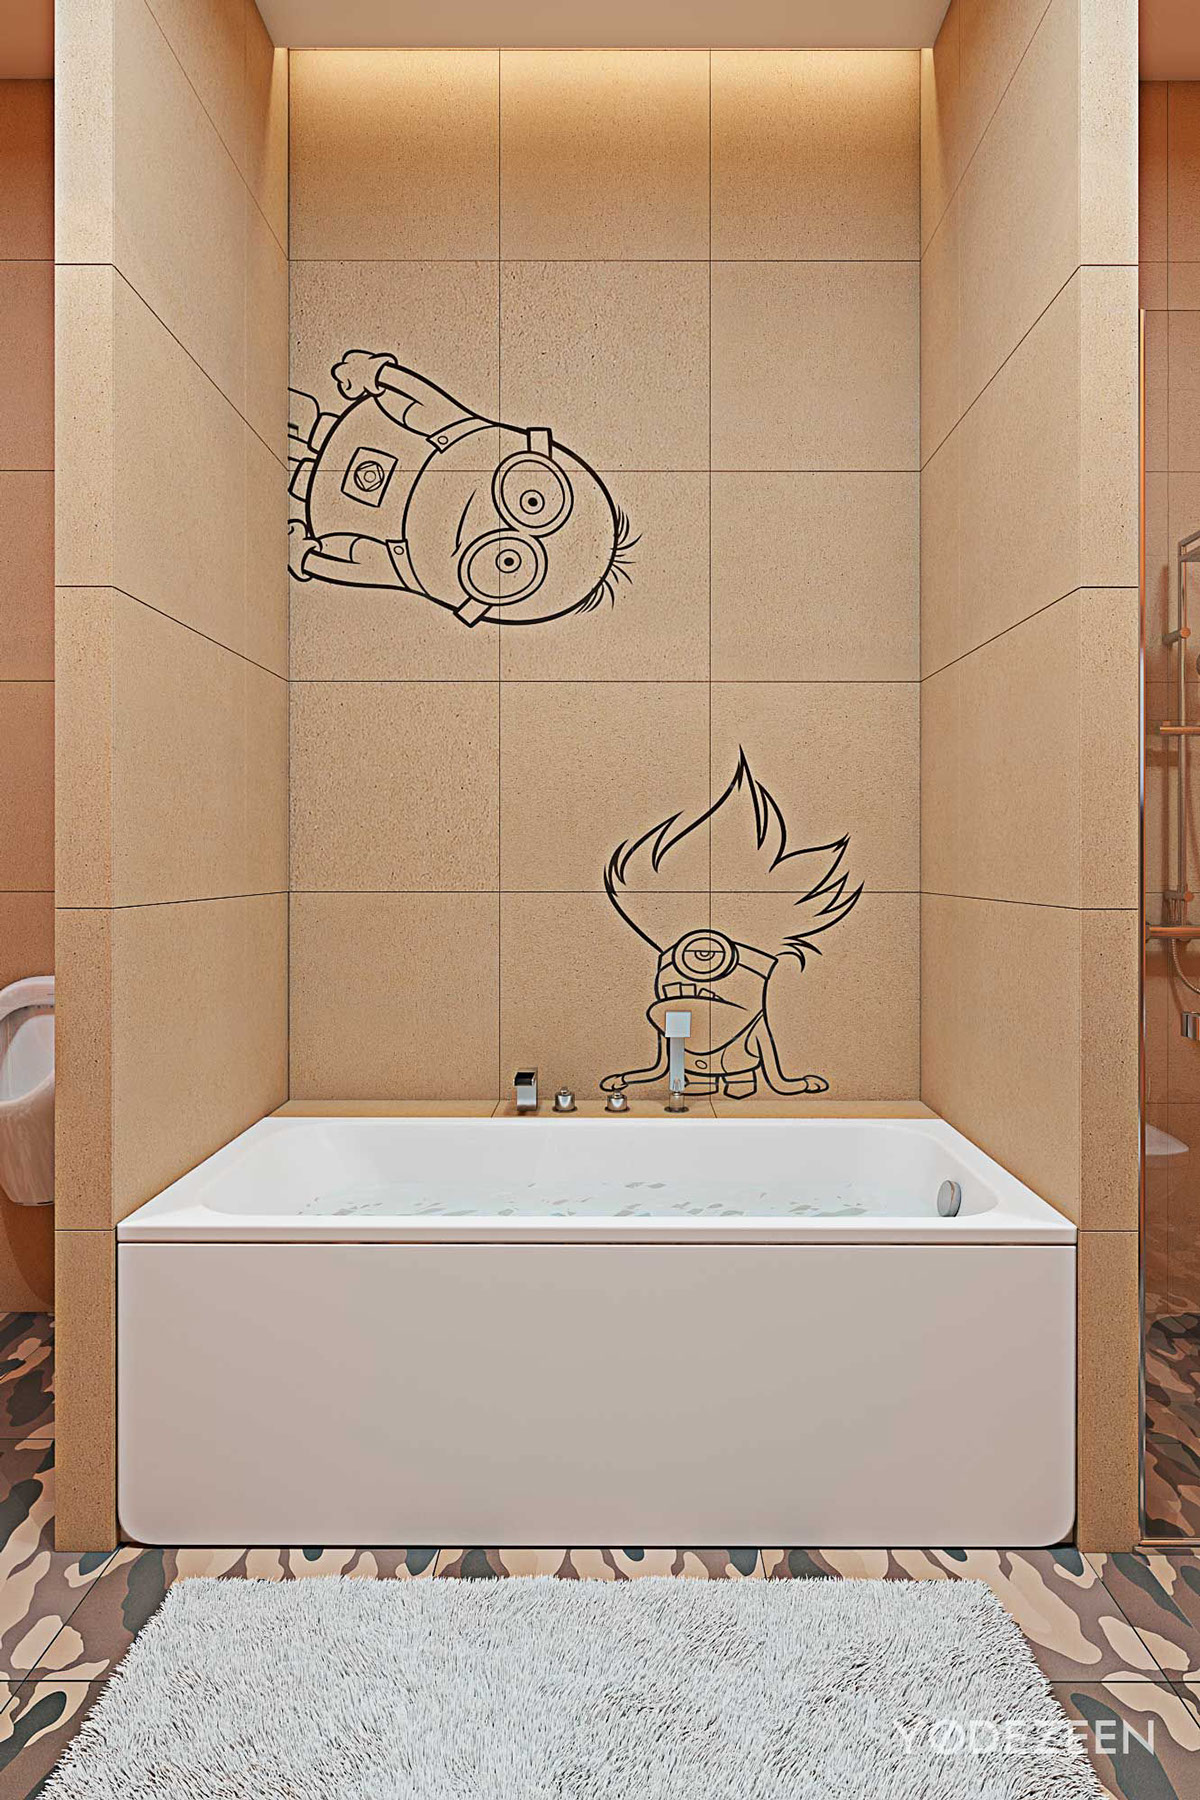 Minion bathroom design